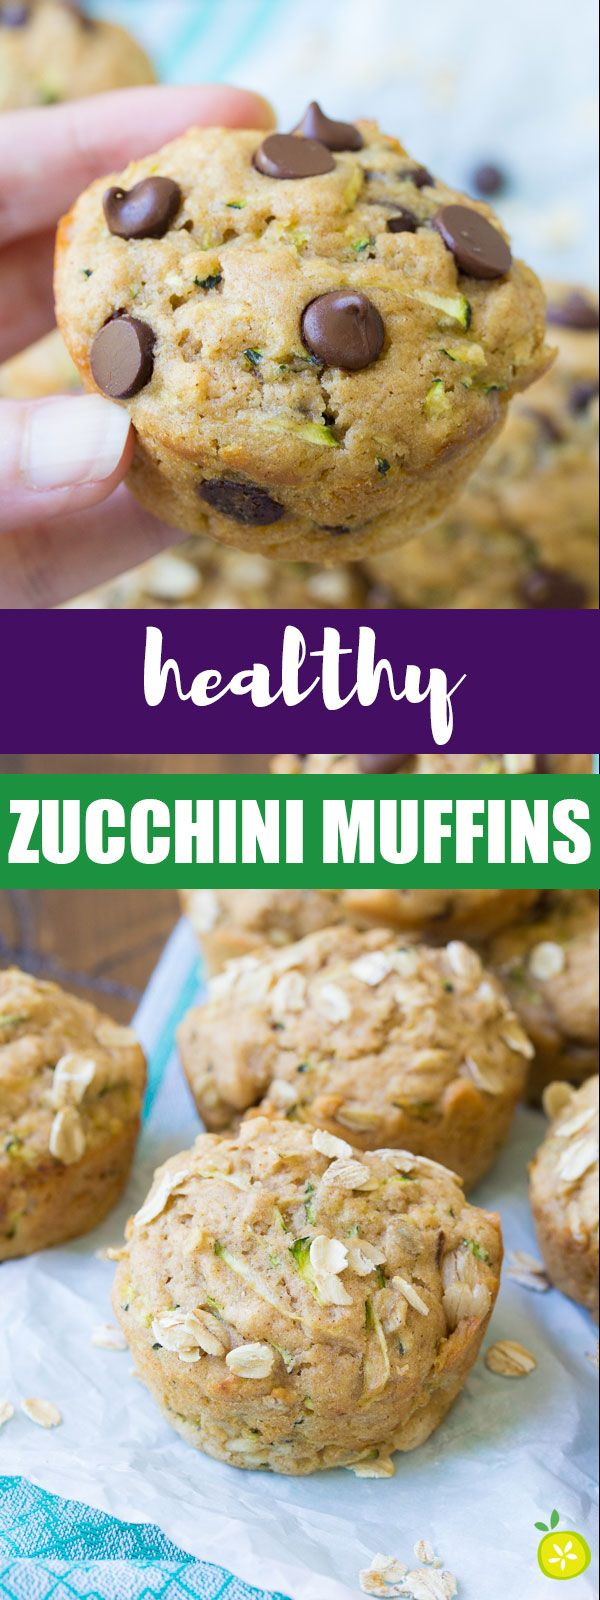 Healthy Zucchini Muffins, made with chocolate chips or oats. Buttermilk adds amazing flavor and makes these muffins so tender! | www.kristineskitchenblog.com